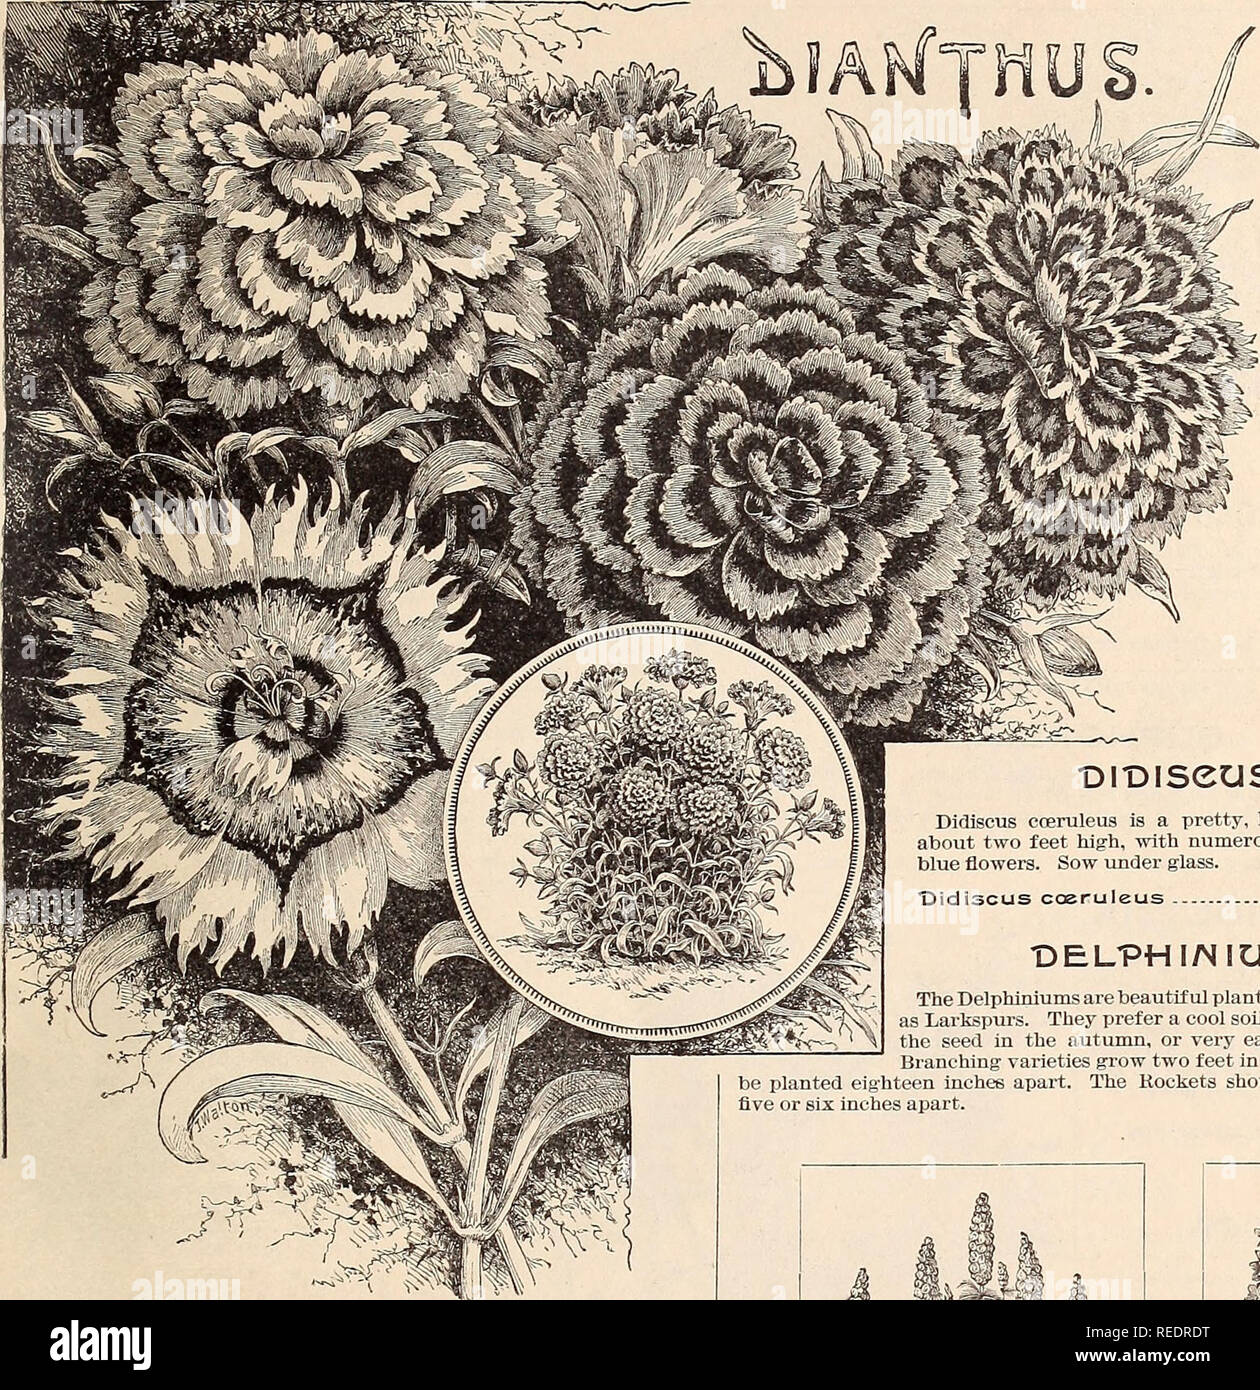 """. Compliments of the season. Seeds Catalogs; Flowers Catalogs; Bulbs (Plants) Catalogs; Fruit Catalogs. JAMES VICK SEEDSMAN, """"ROCHESTER, N. g. 13. DiDiseus. Didiscus coeruleus is a pretty, half-hardy annual, about two feet high, with numerous umbels of sky- blue flowers. Sow under glass. """"Didiscus cceruleus 10 The varieties of Dianthus known as Chinese Pinks and Japan Pinks are among the most brilliant of our garden flowers. Plants of the tall sorts are from twelve to fifteen inches in height; the dwarf make low, compact plants. Seed may be sown in the spring, under glass or in a see Stock Photo"""